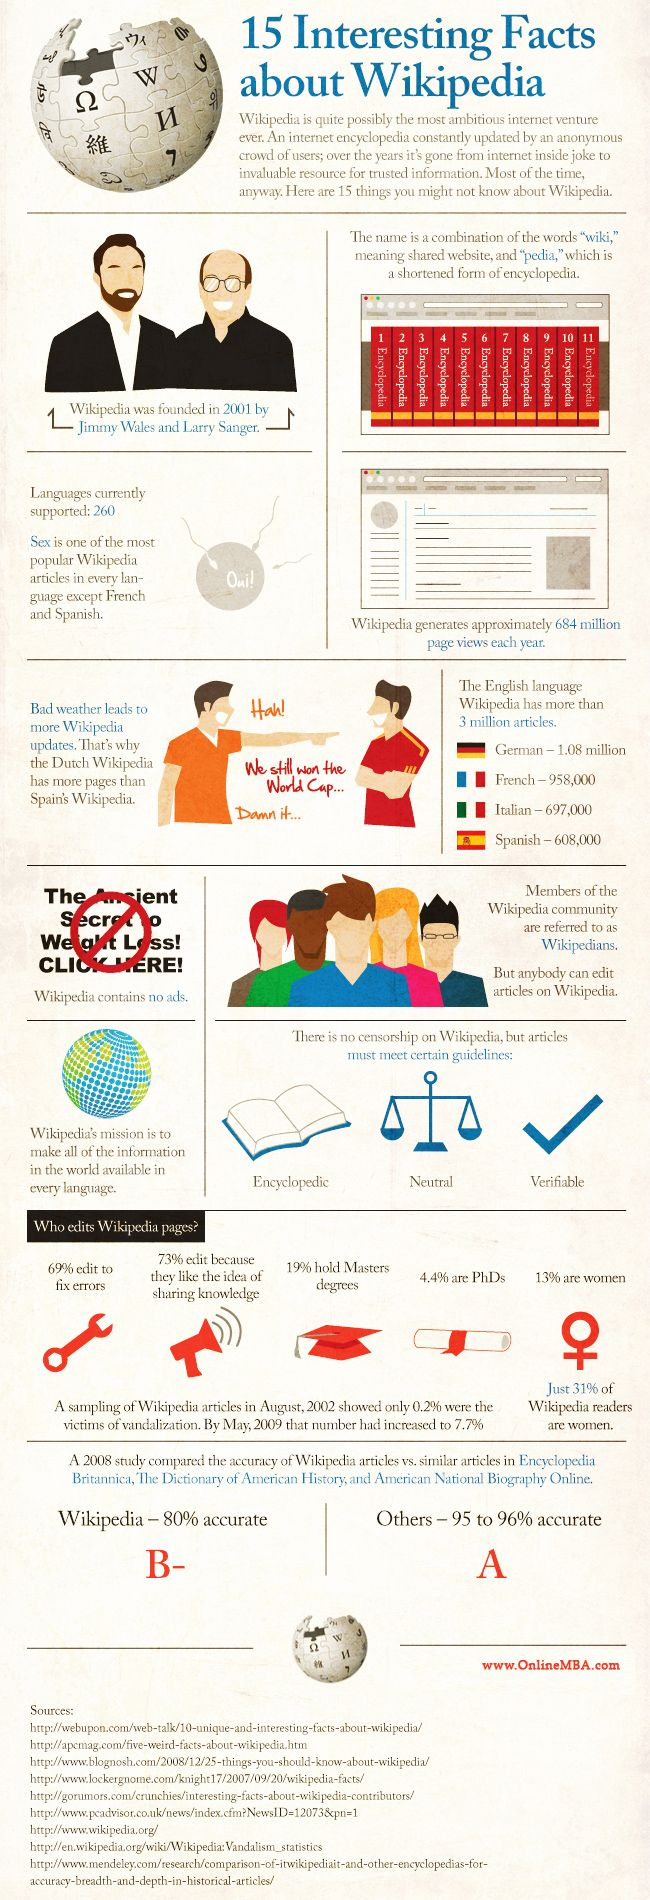 Interesting Facts About Wikipedia Infographic Design - 15 amazing facts about the internet